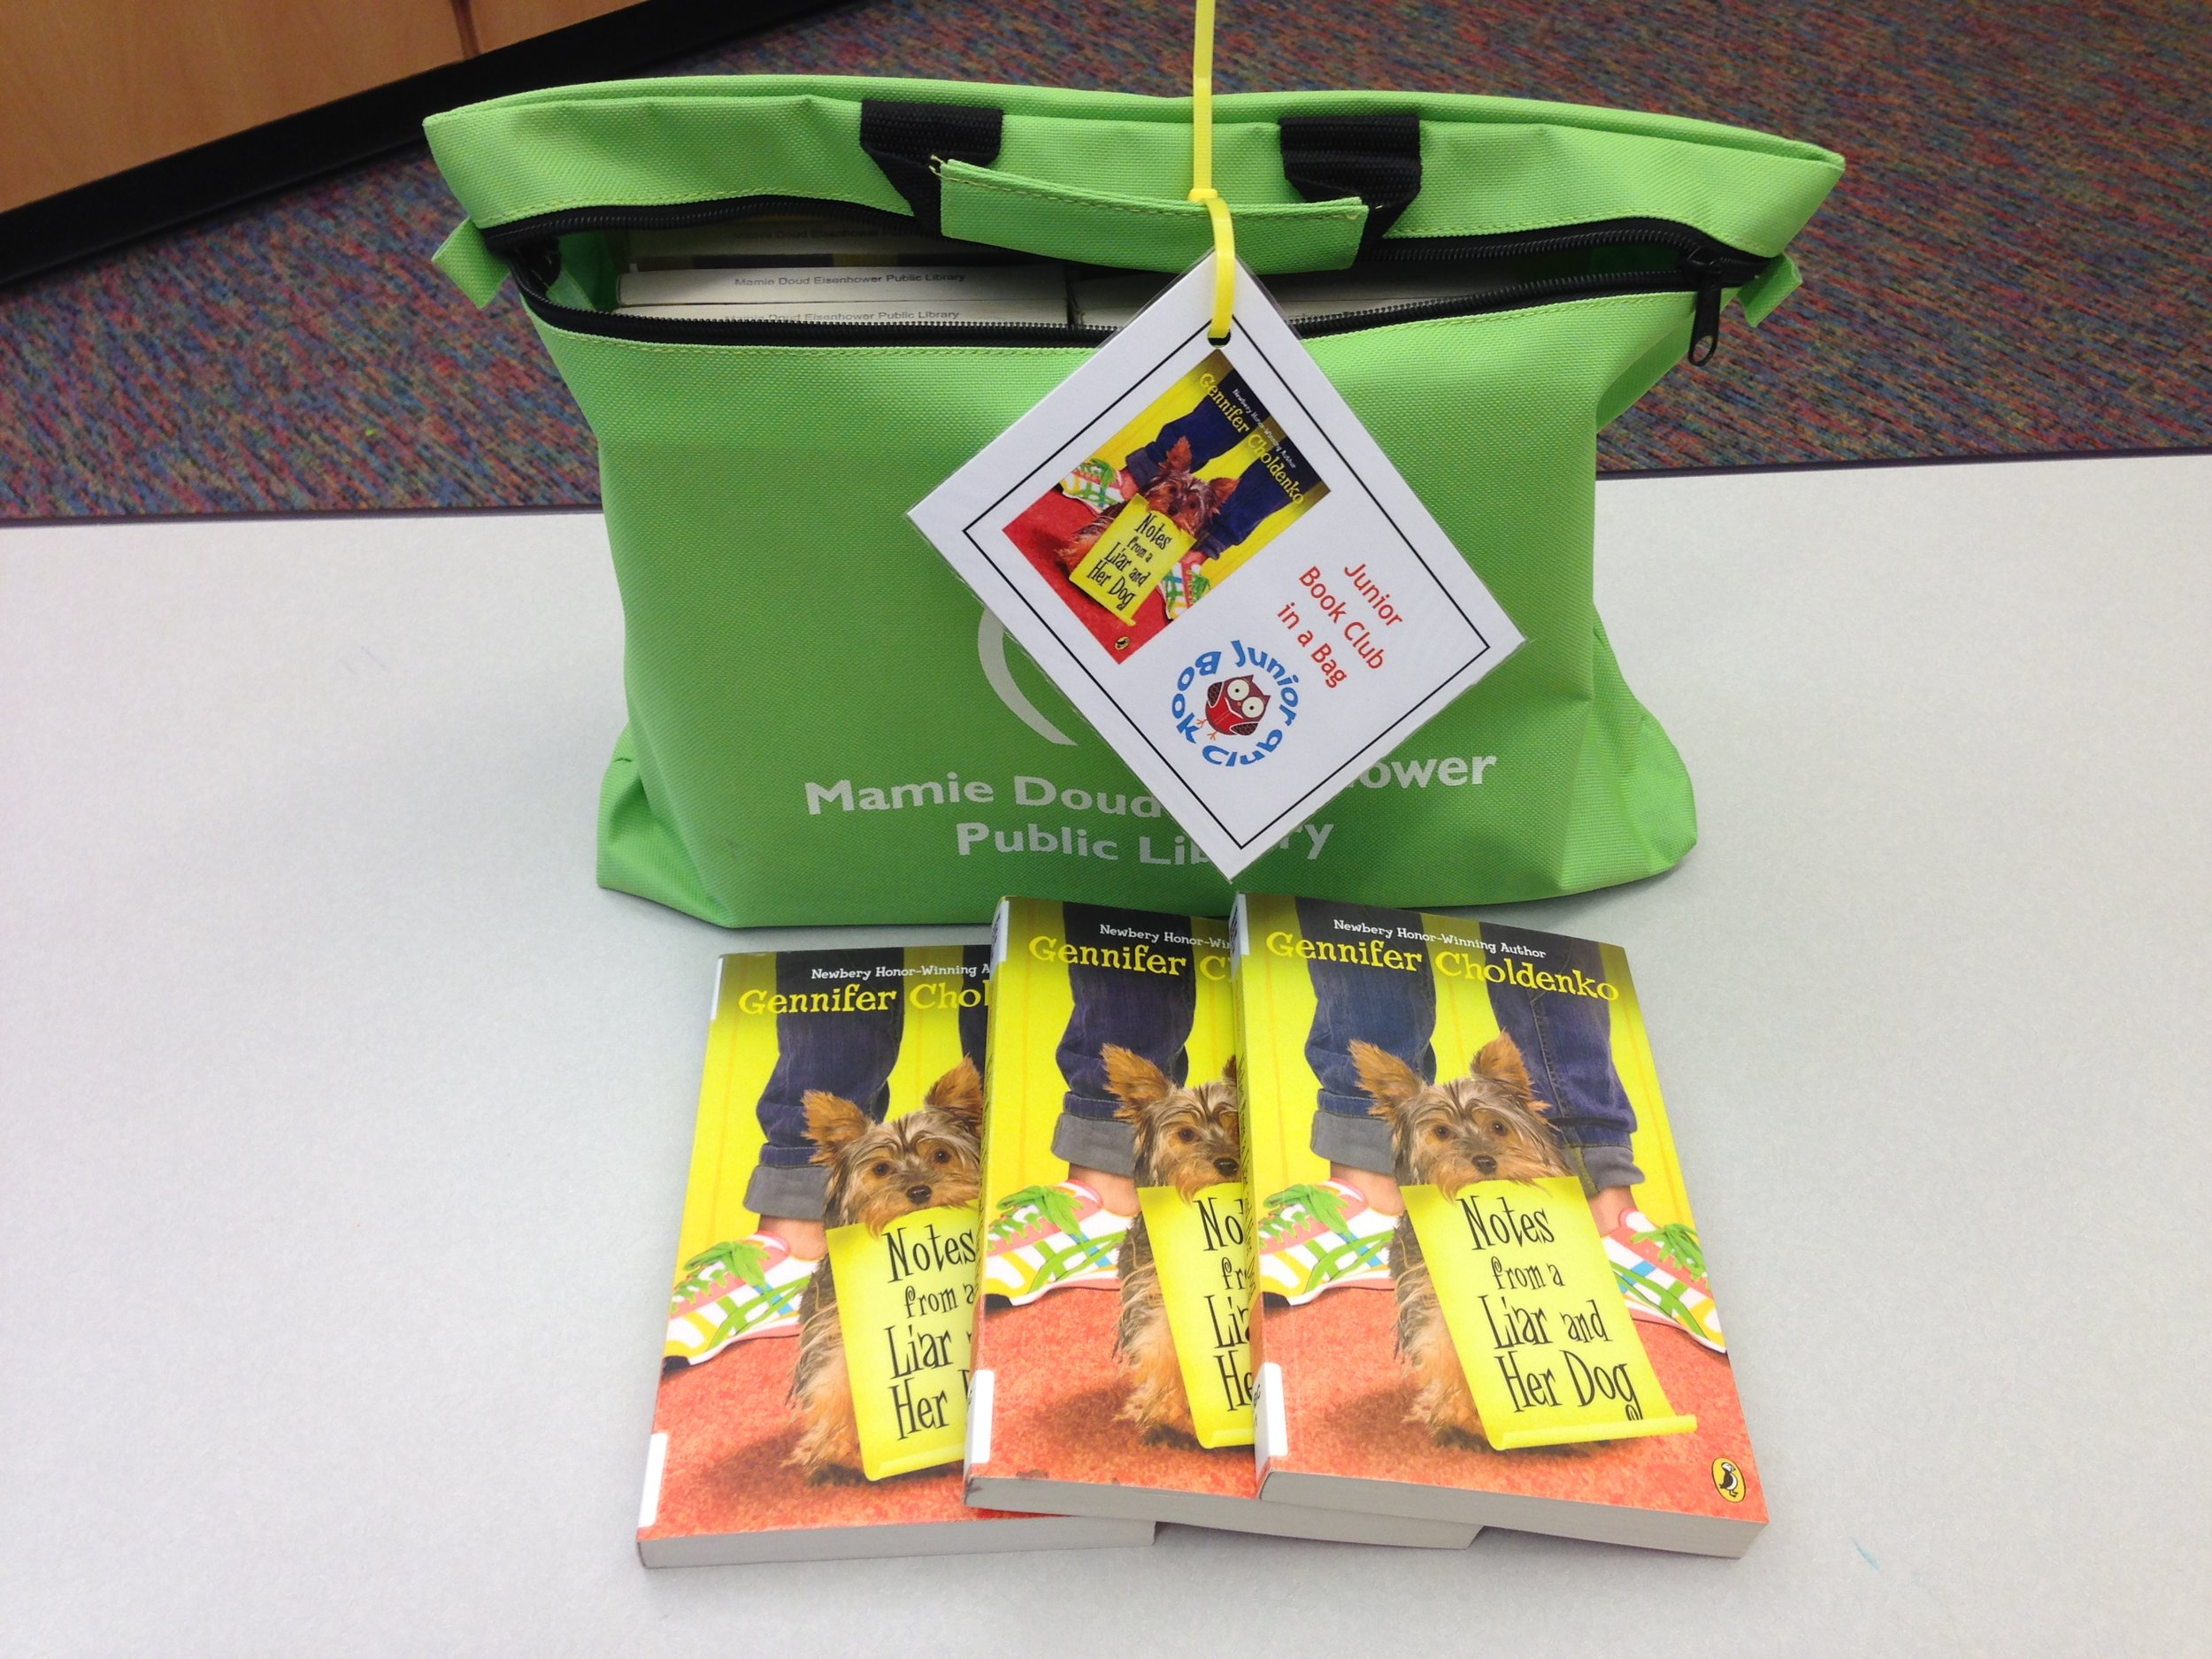 Broomfield, Colorado offers a Book Club in a Bag